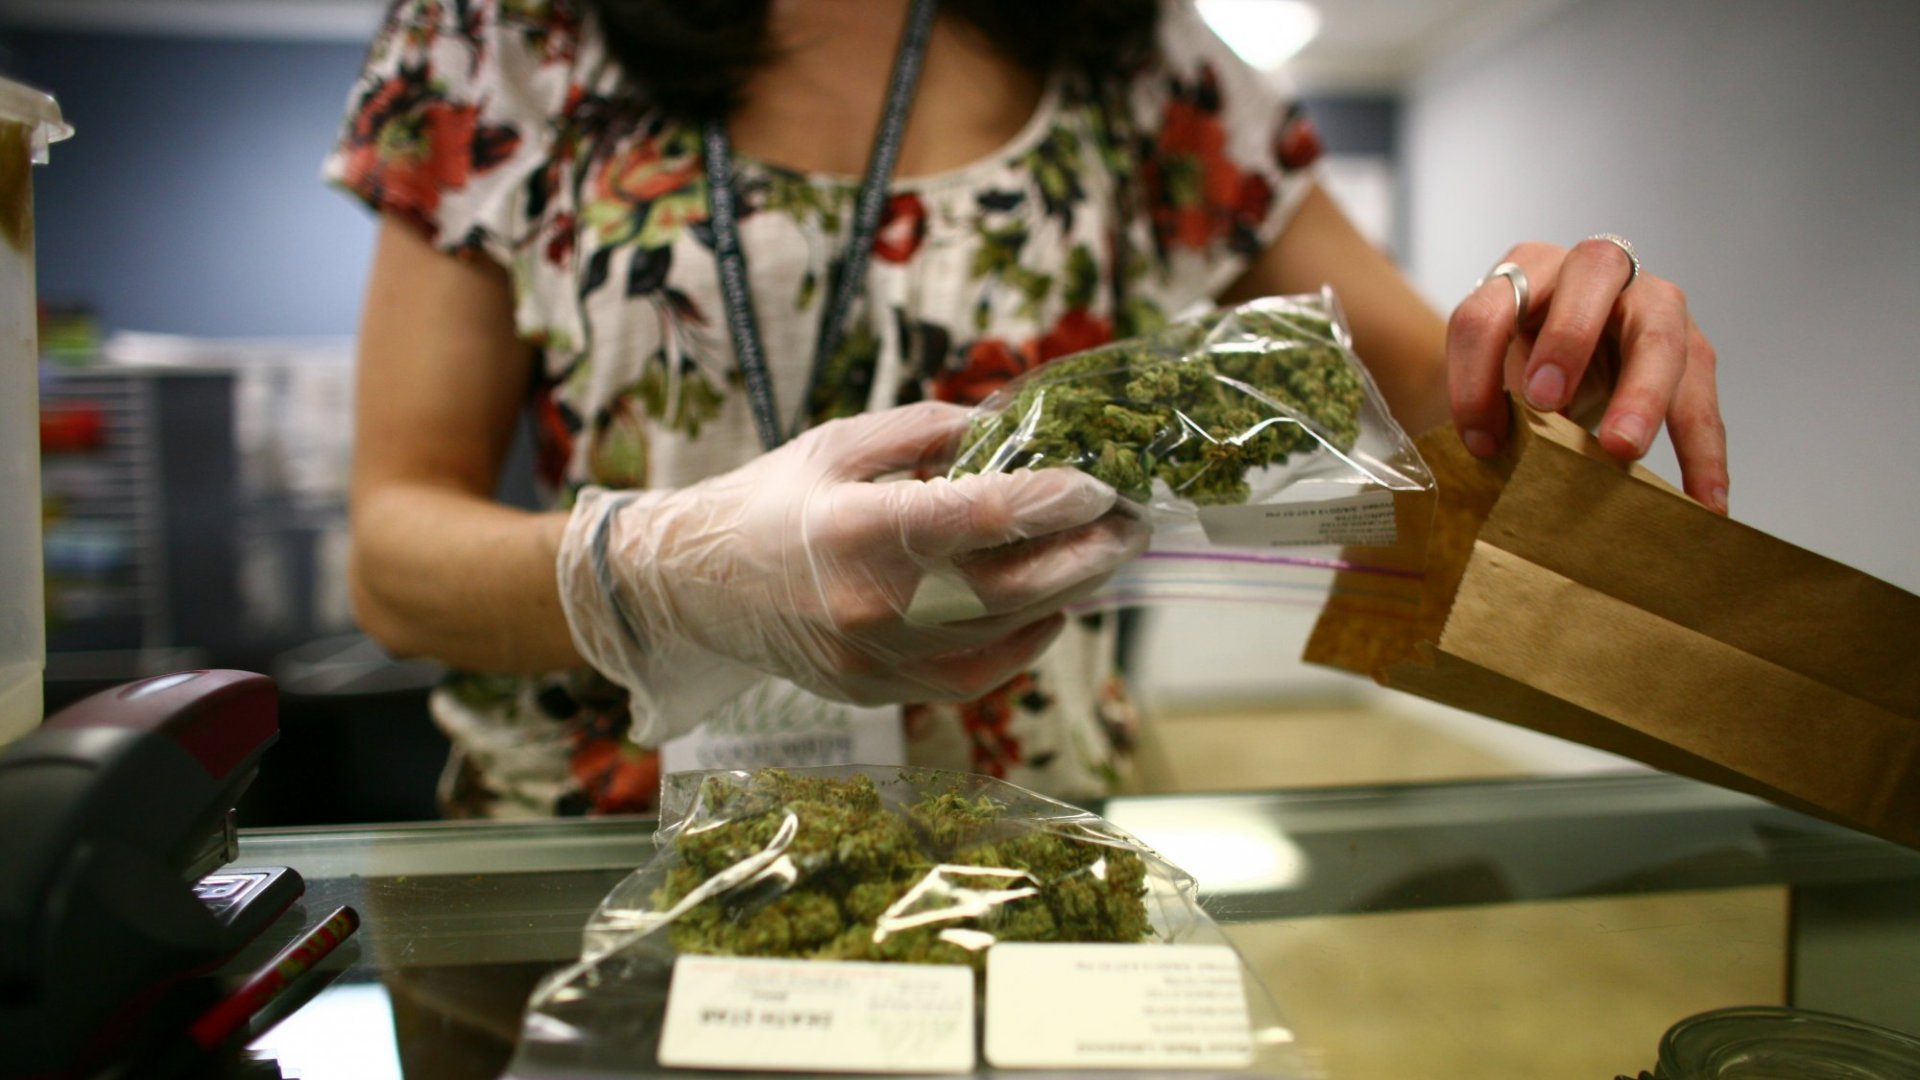 Hackers brought down a POS system software company that serves the marijuana industry